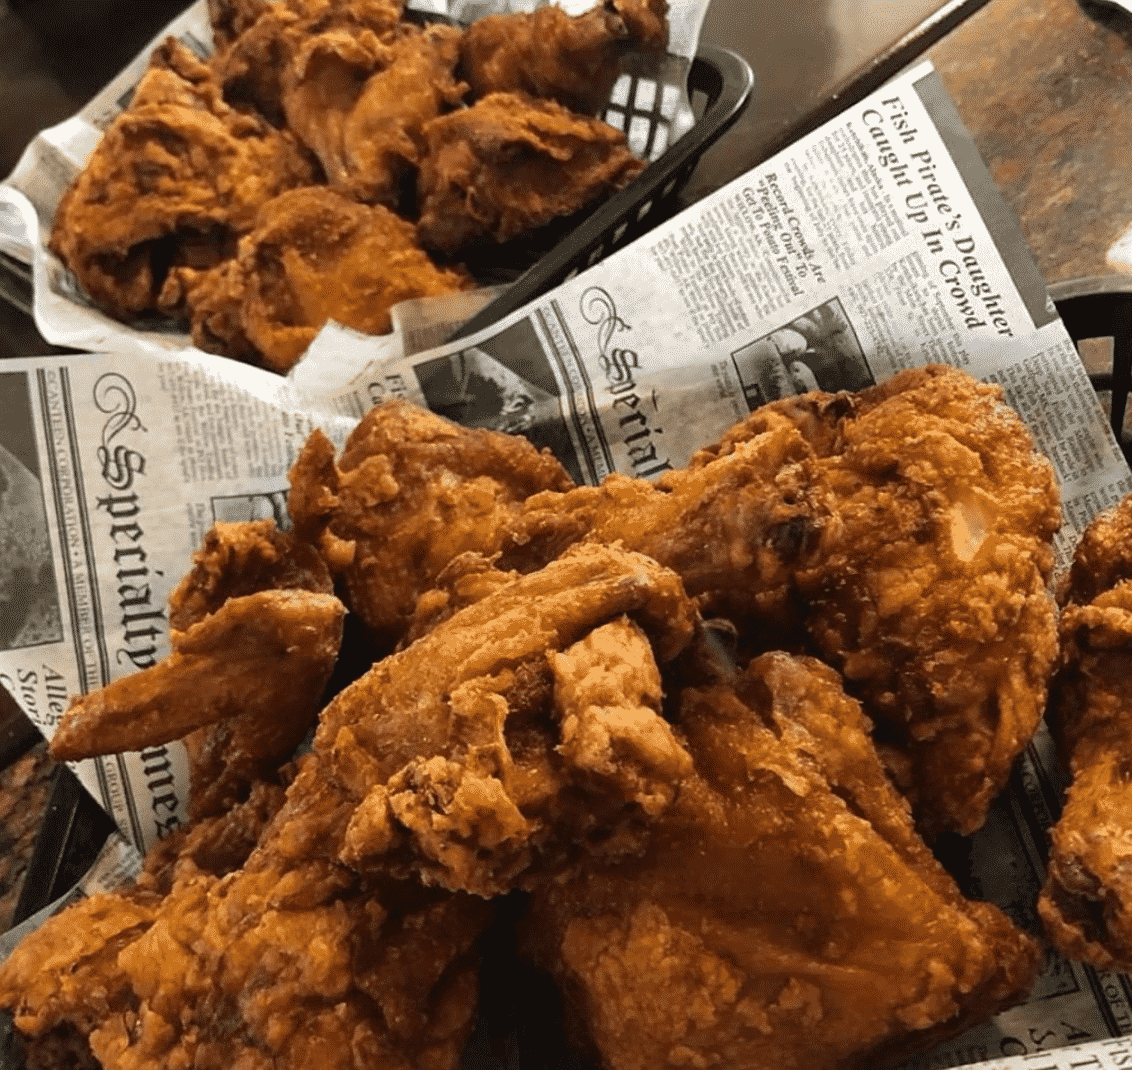 Lettie's Kitchen Fried Chicken in America